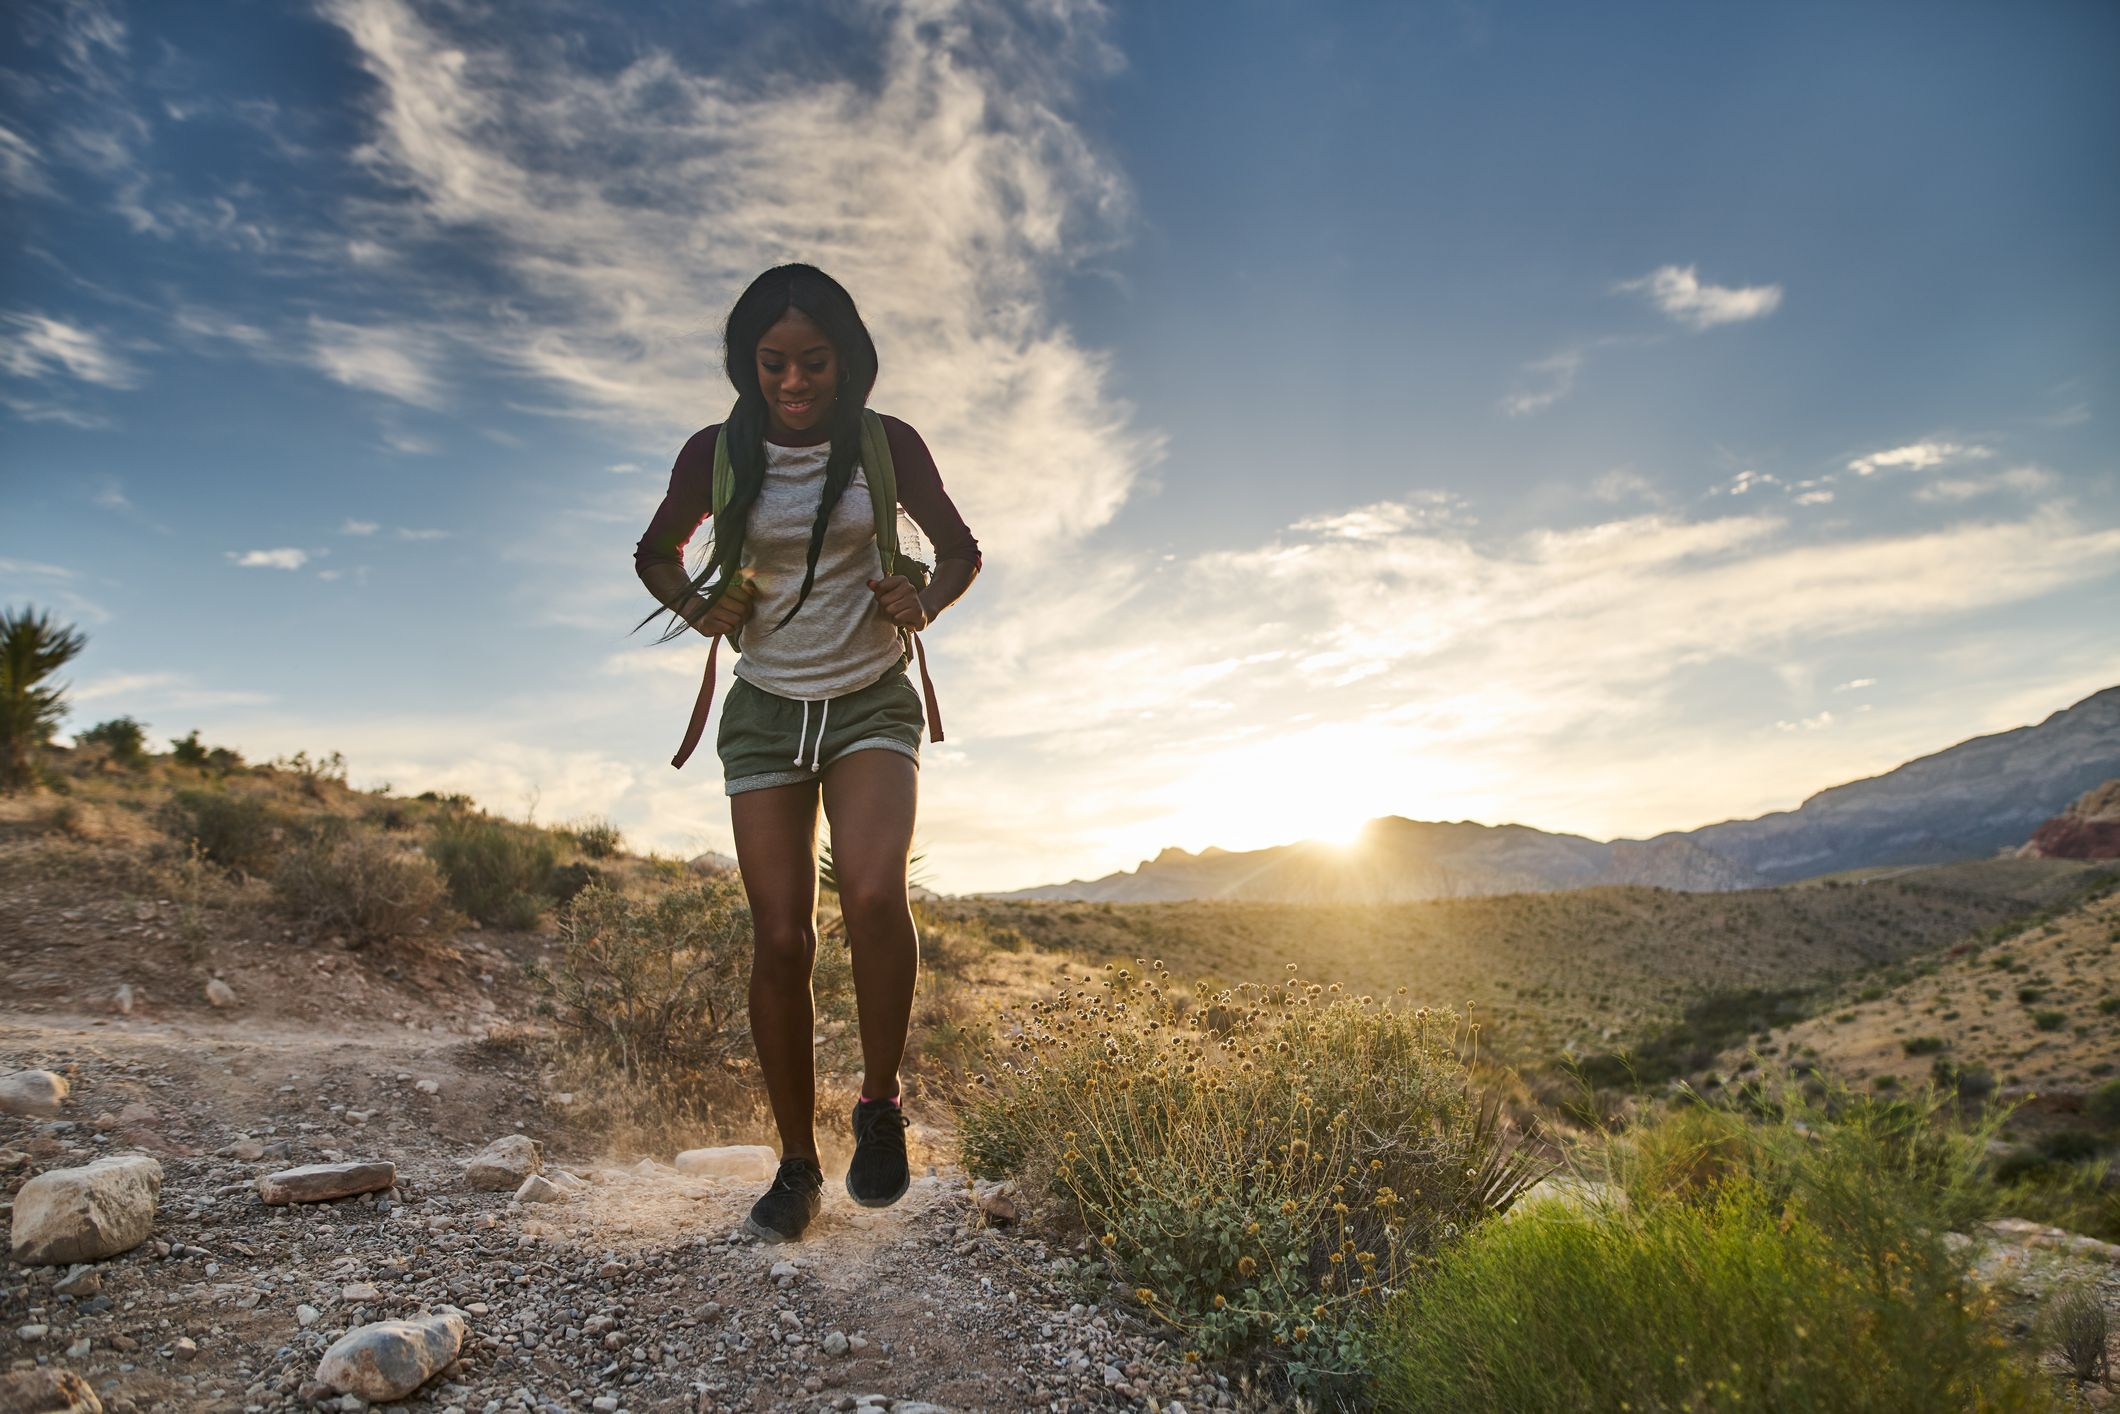 How many calories are burned while hiking